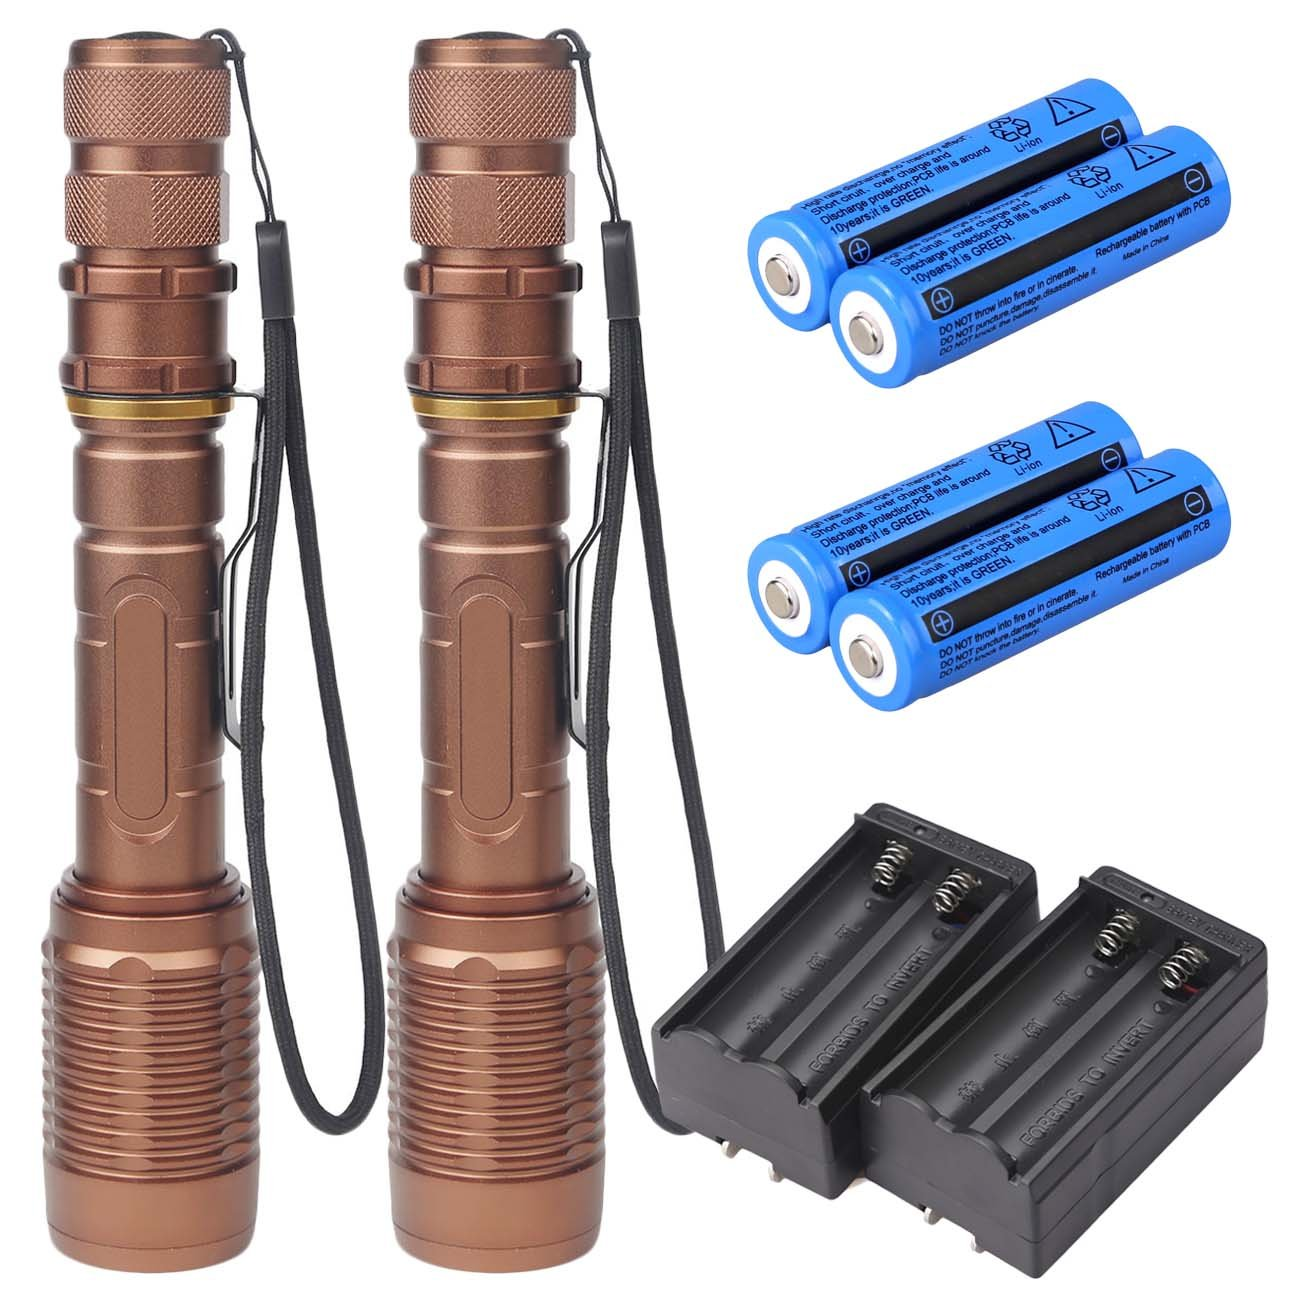 ShineTool 2 Pack LED Flashlight set High Bright Zoomable Flashlights, 5 Modes Adjustable Focus Outdoor Handheld Torch Light by Shinetool